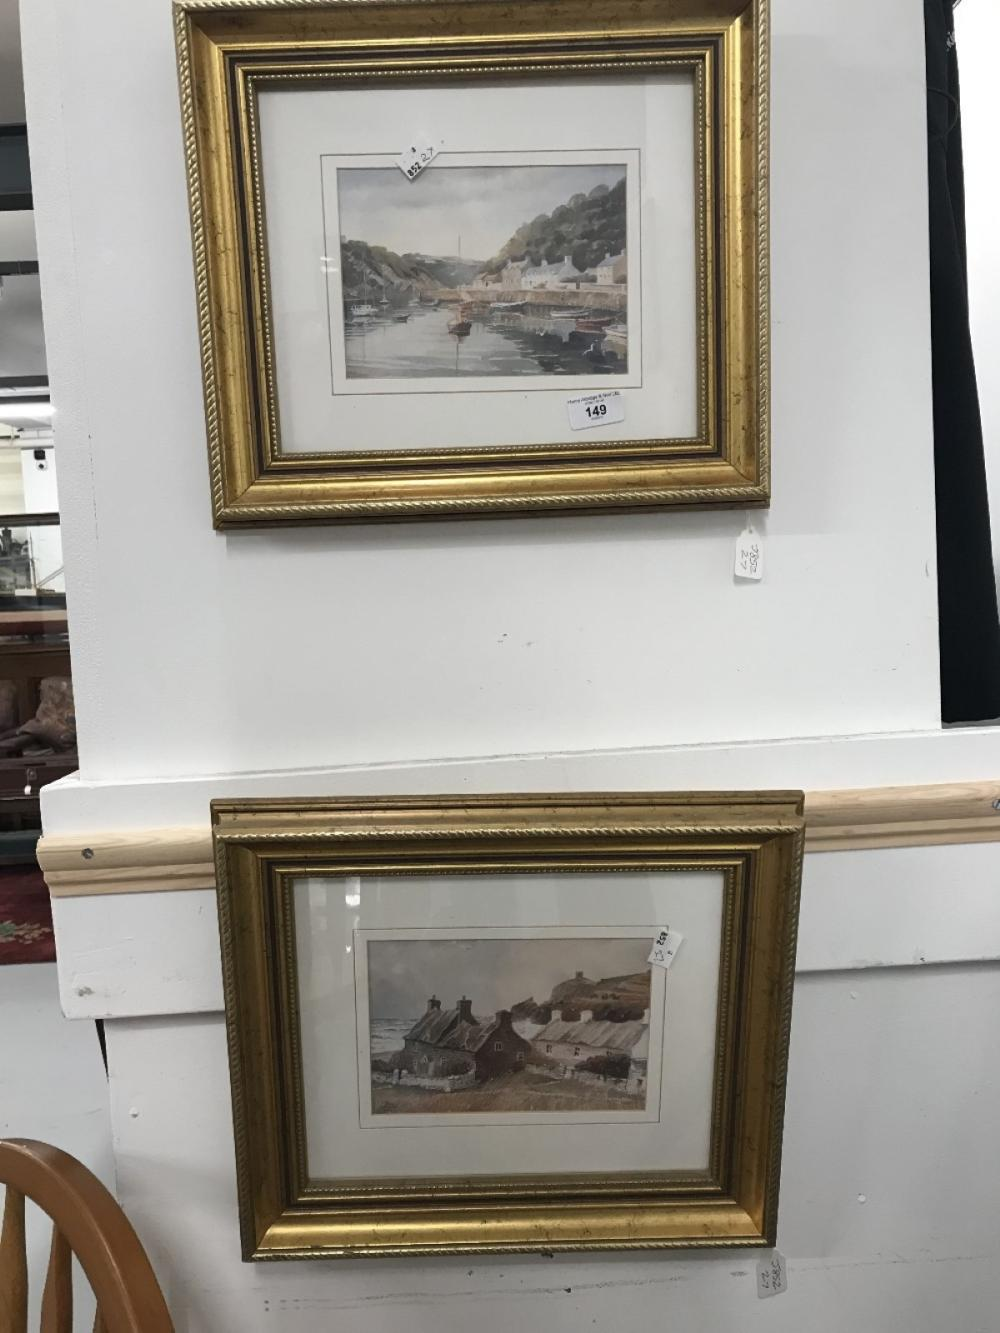 Prints: Alun Davies 1997 watercolour Lower Town, Fishguard. Gilt framed and glazed 13½ins. x 9½ins.